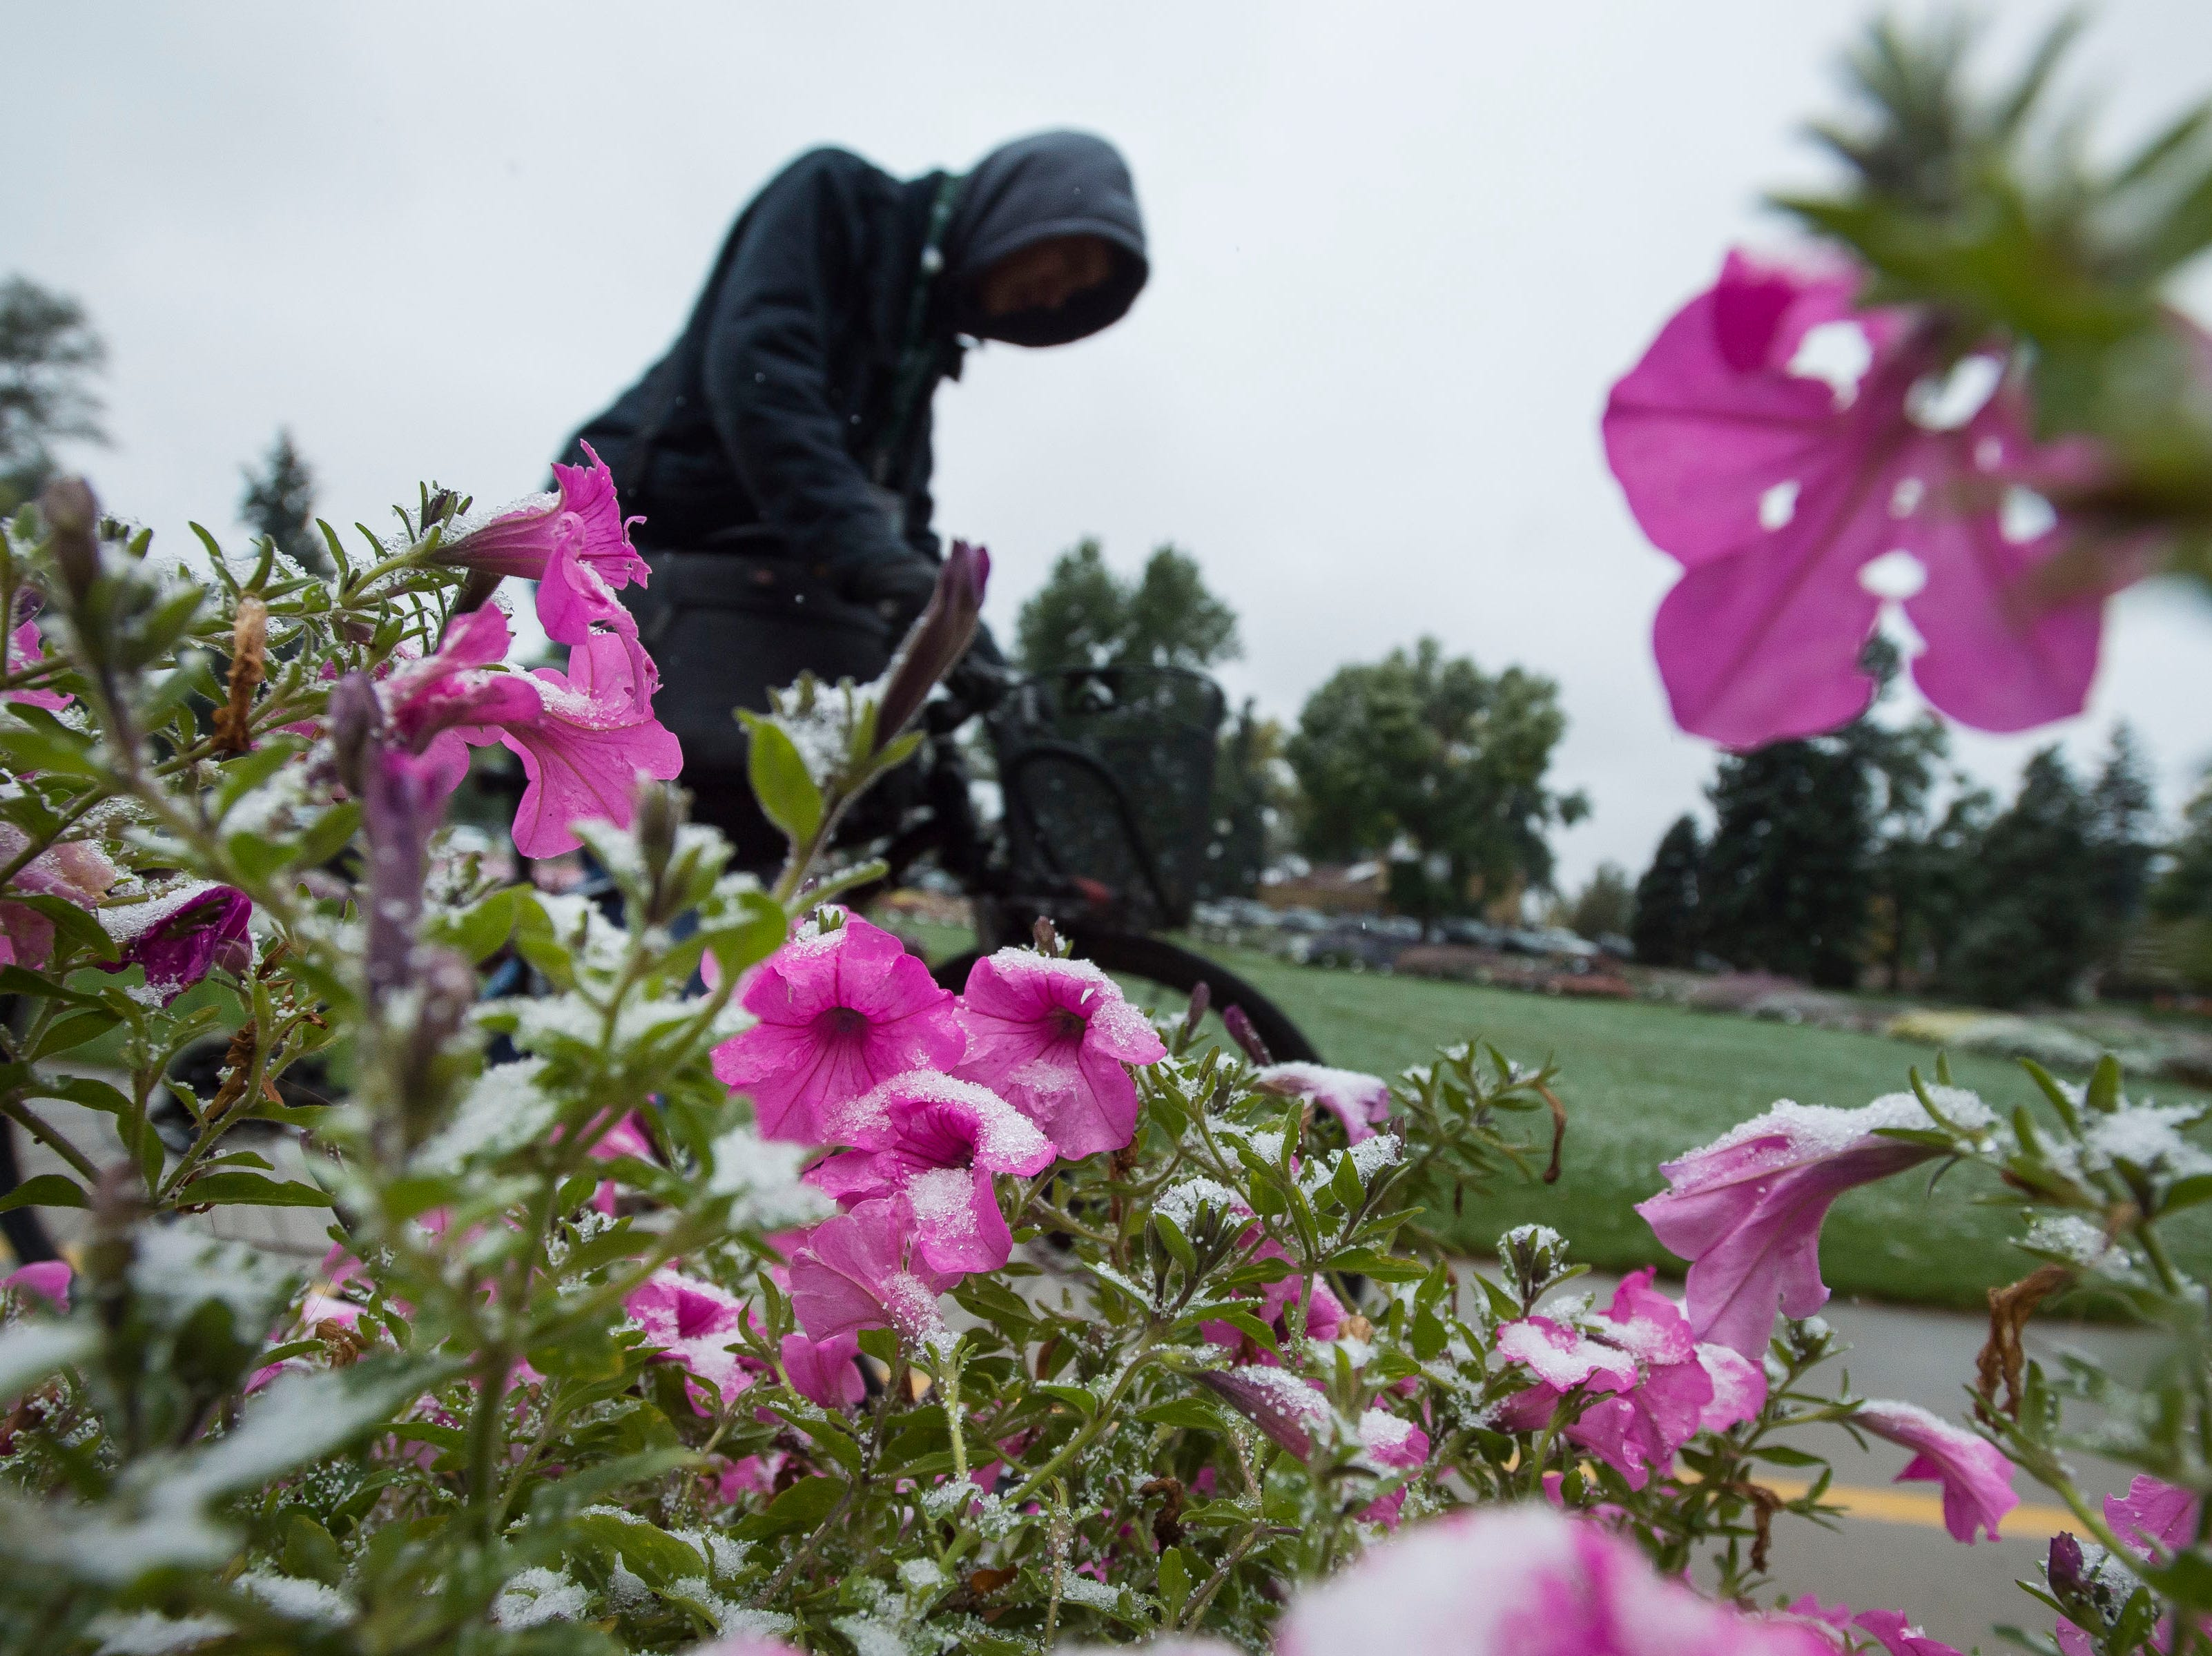 Snow clings to flowers as a cyclist rides through the Annual Flower Trial Garden on Wednesday, Oct. 10, 2018, on the Colorado State University campus in Fort Collins, Colo.